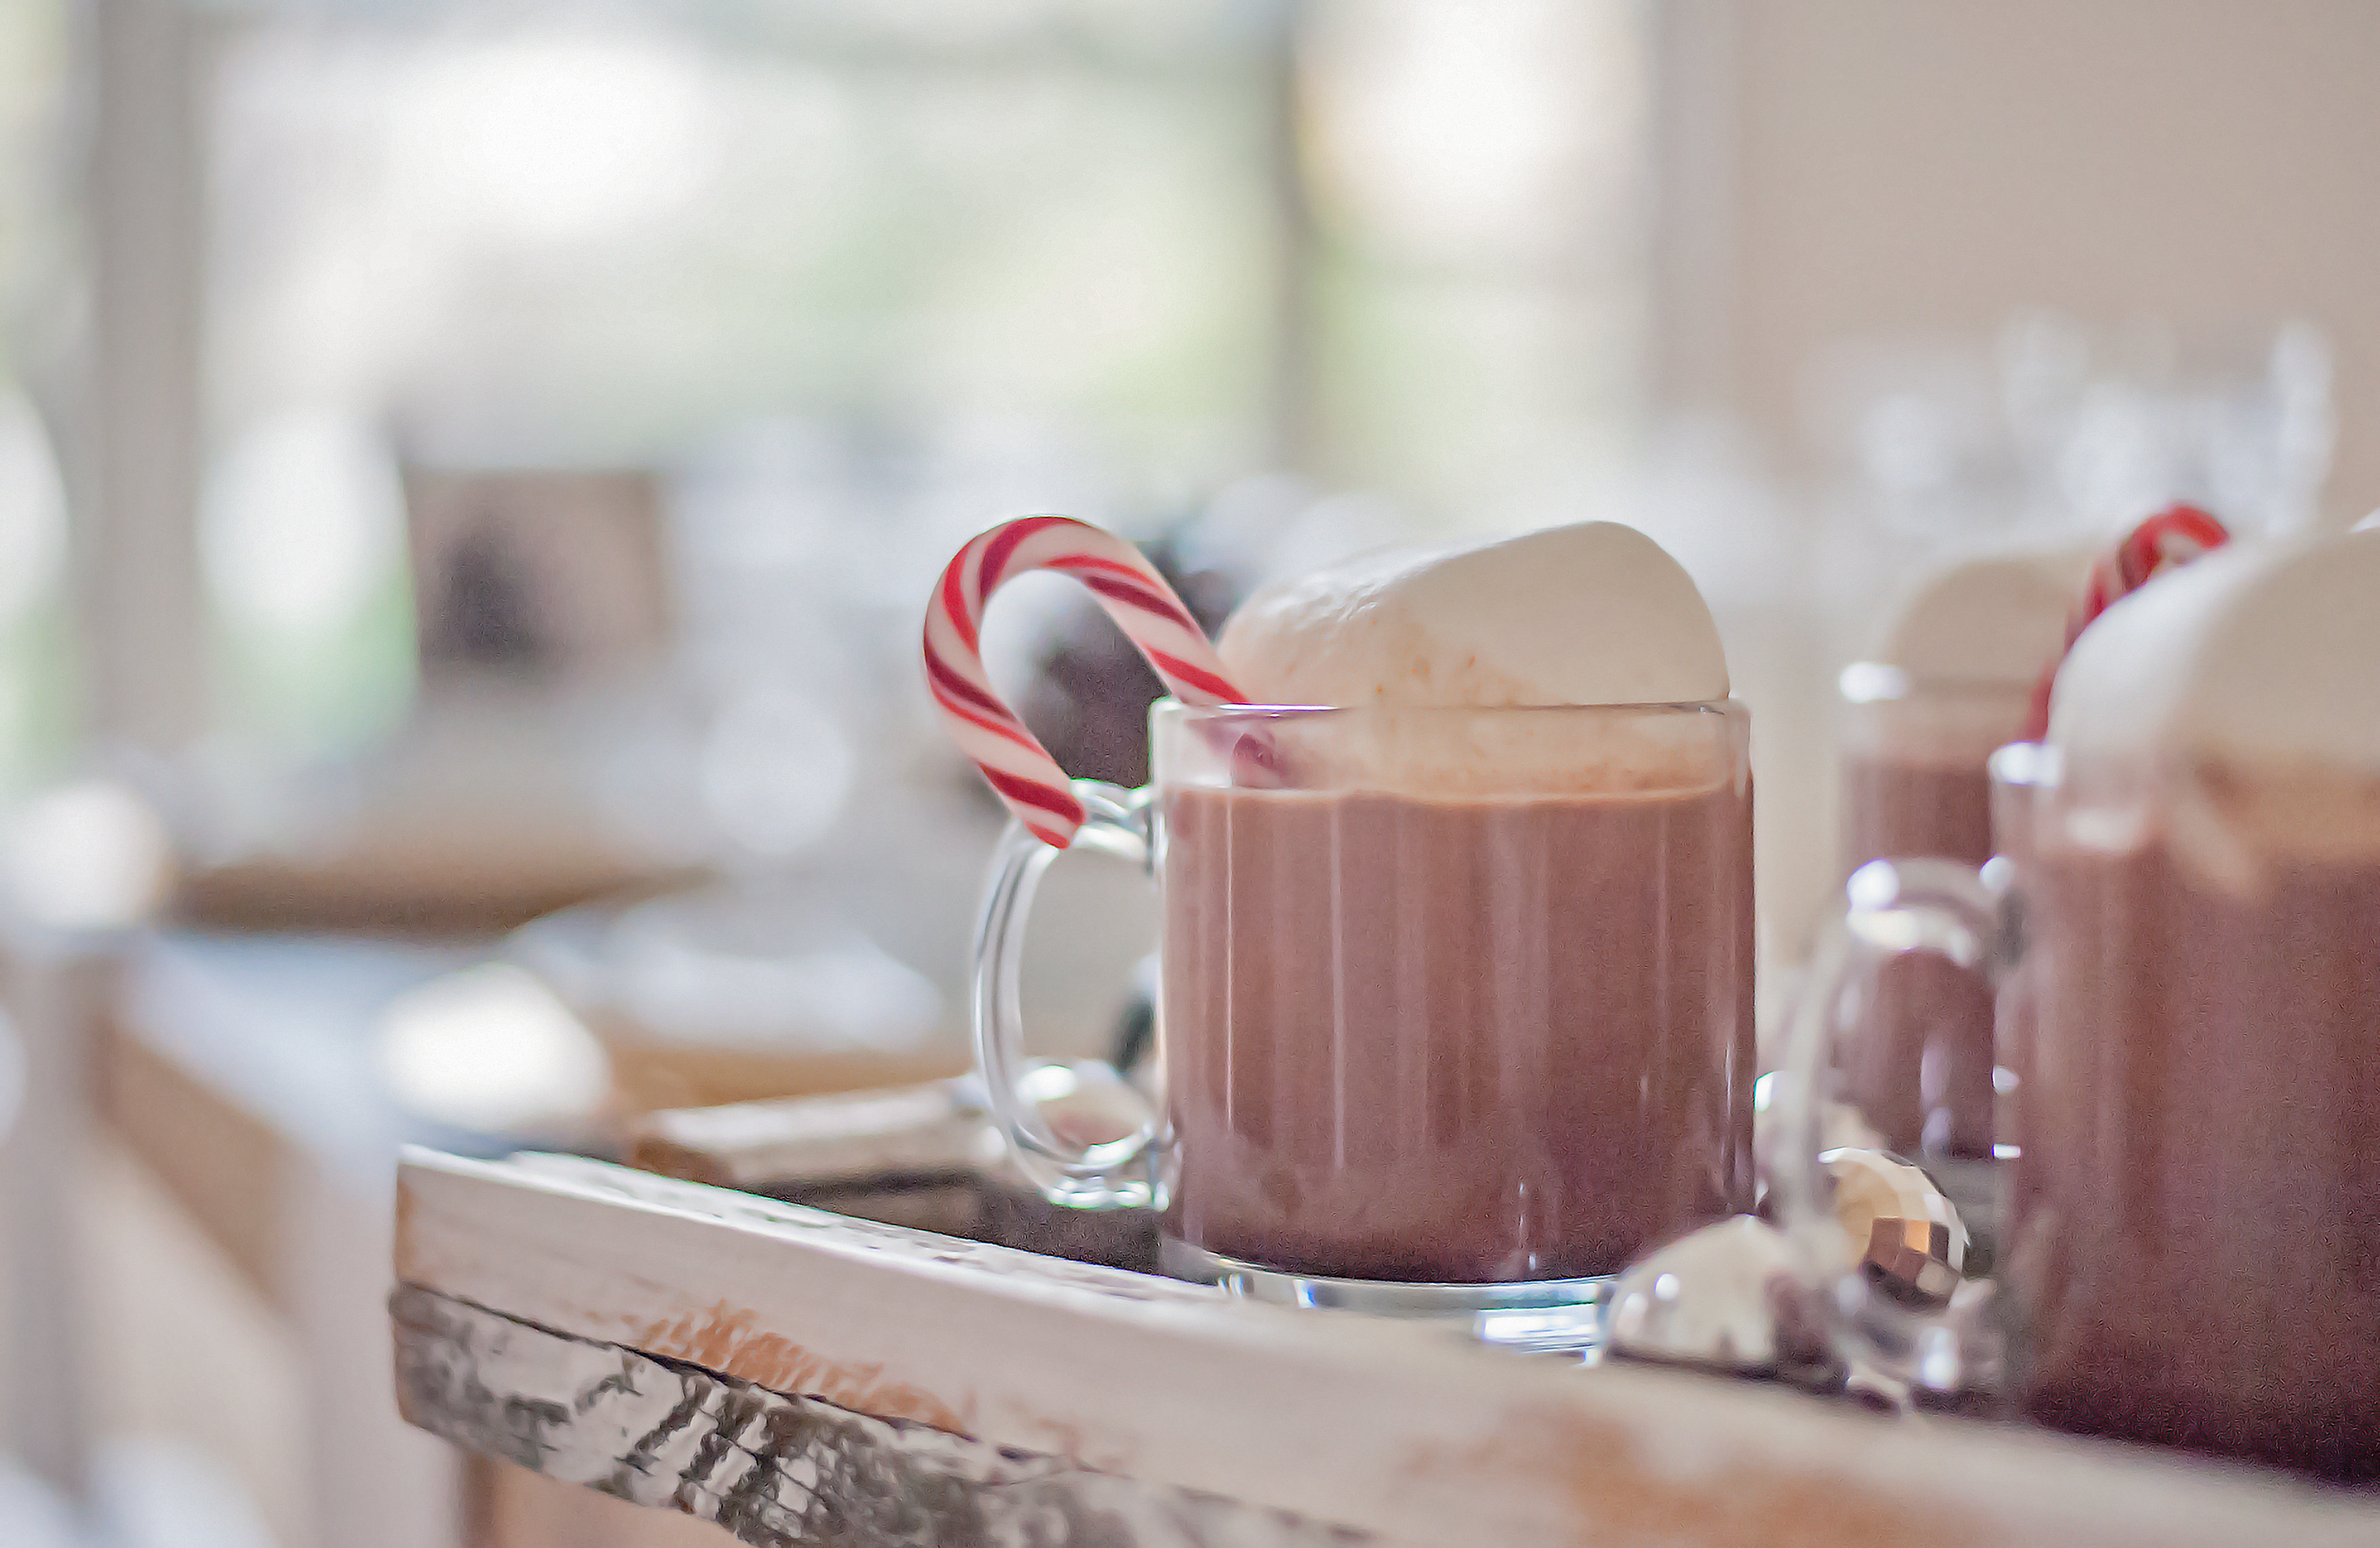 How to Upgrade Your Instant Hot Chocolate - Cinnamon Brown Sugar Hot Cocoa for the Holidays #Christmas